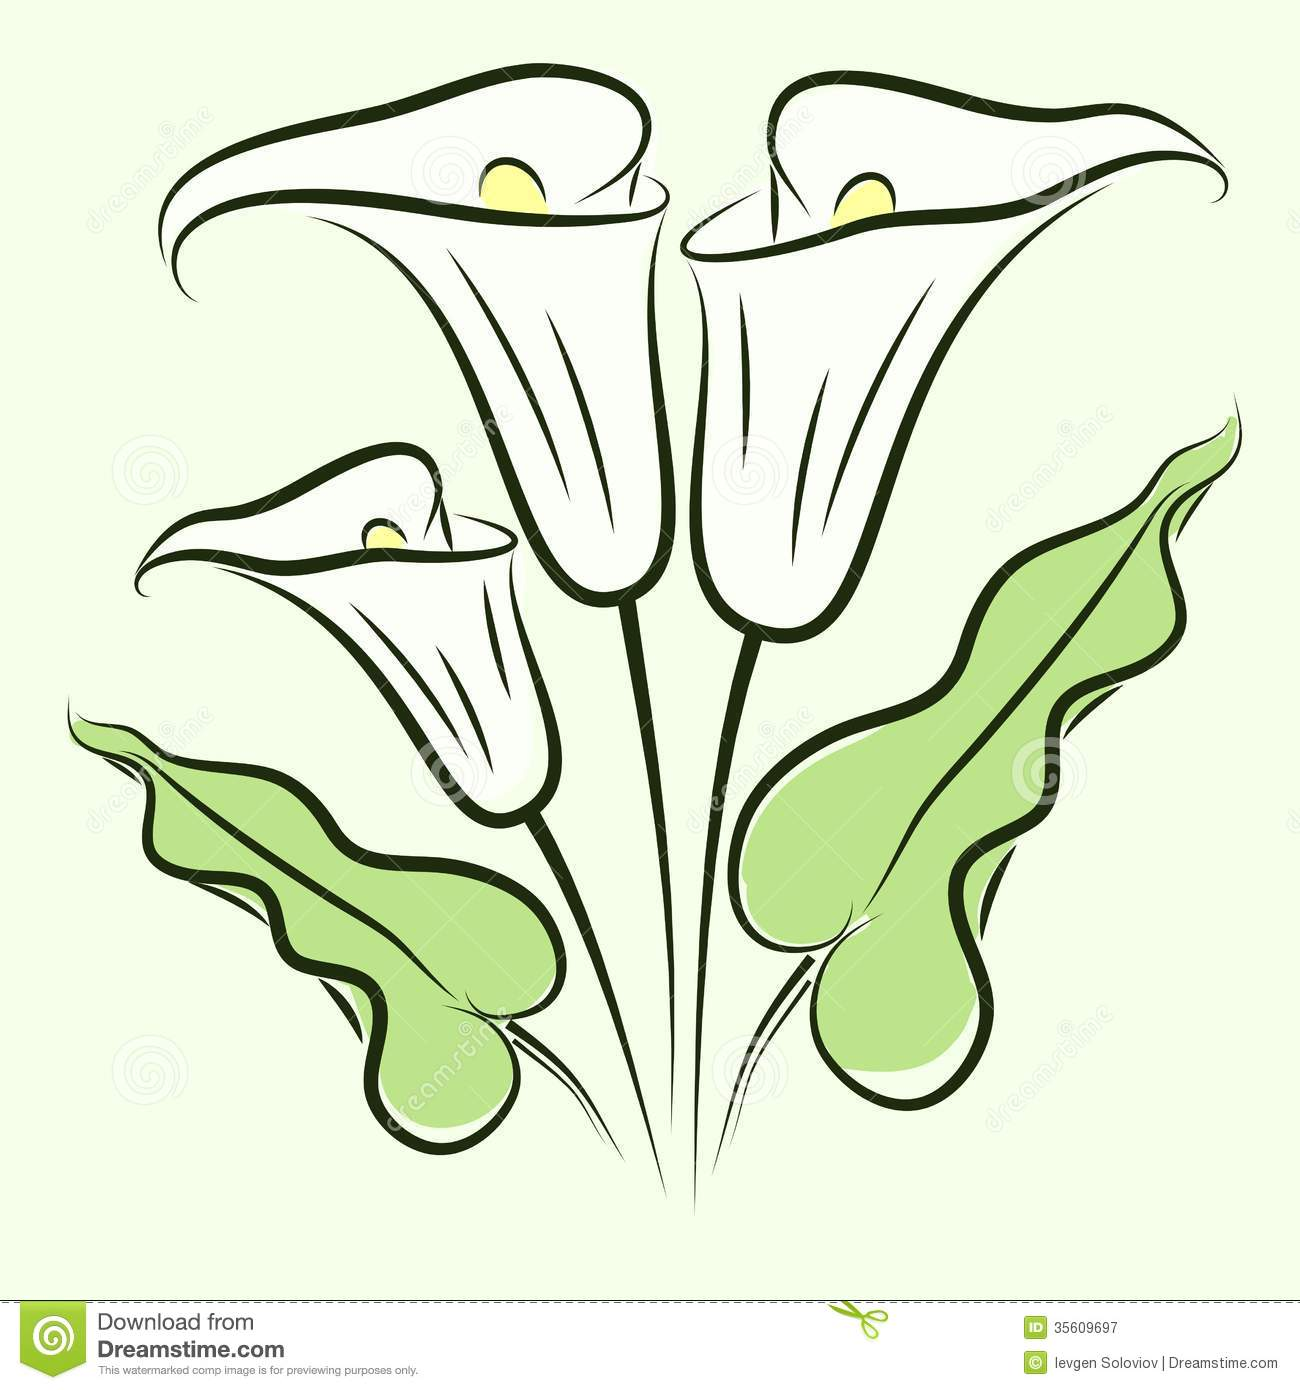 Uncategorized Calla Lily Drawings calla lily color royalty free stock photography image 35609697 photo download lily